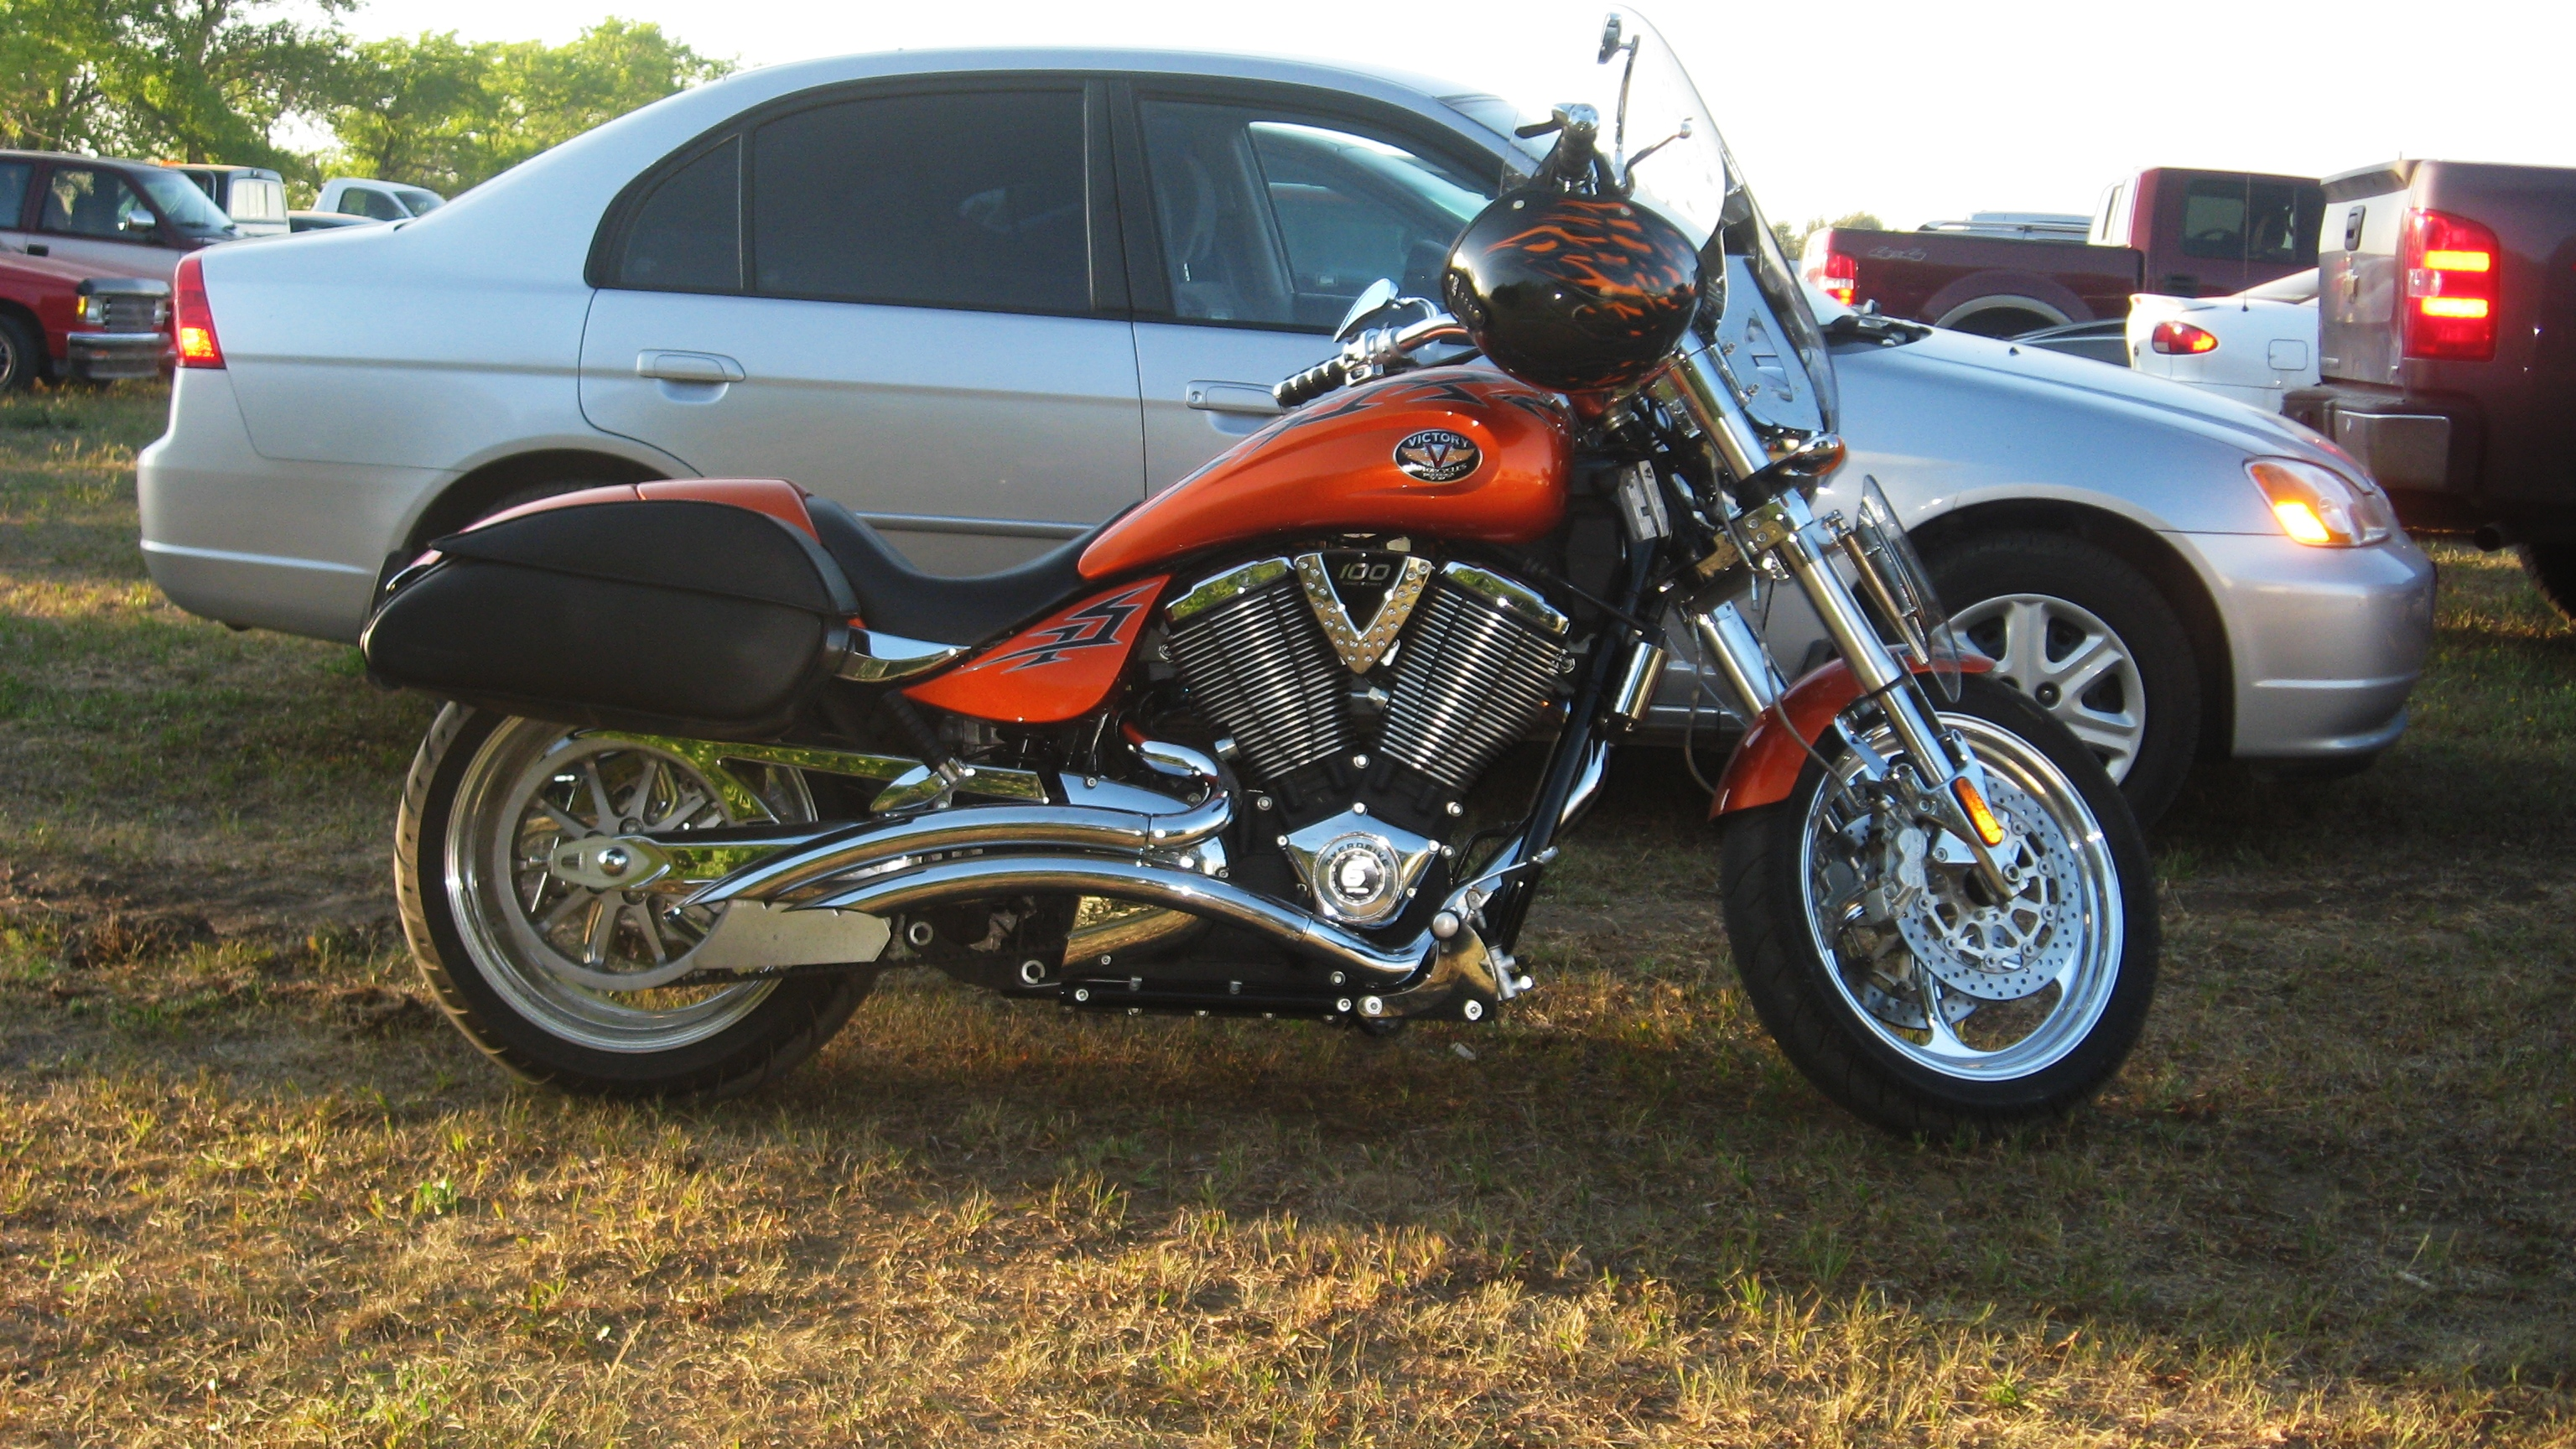 Description Victory motorcycle 2.jpg